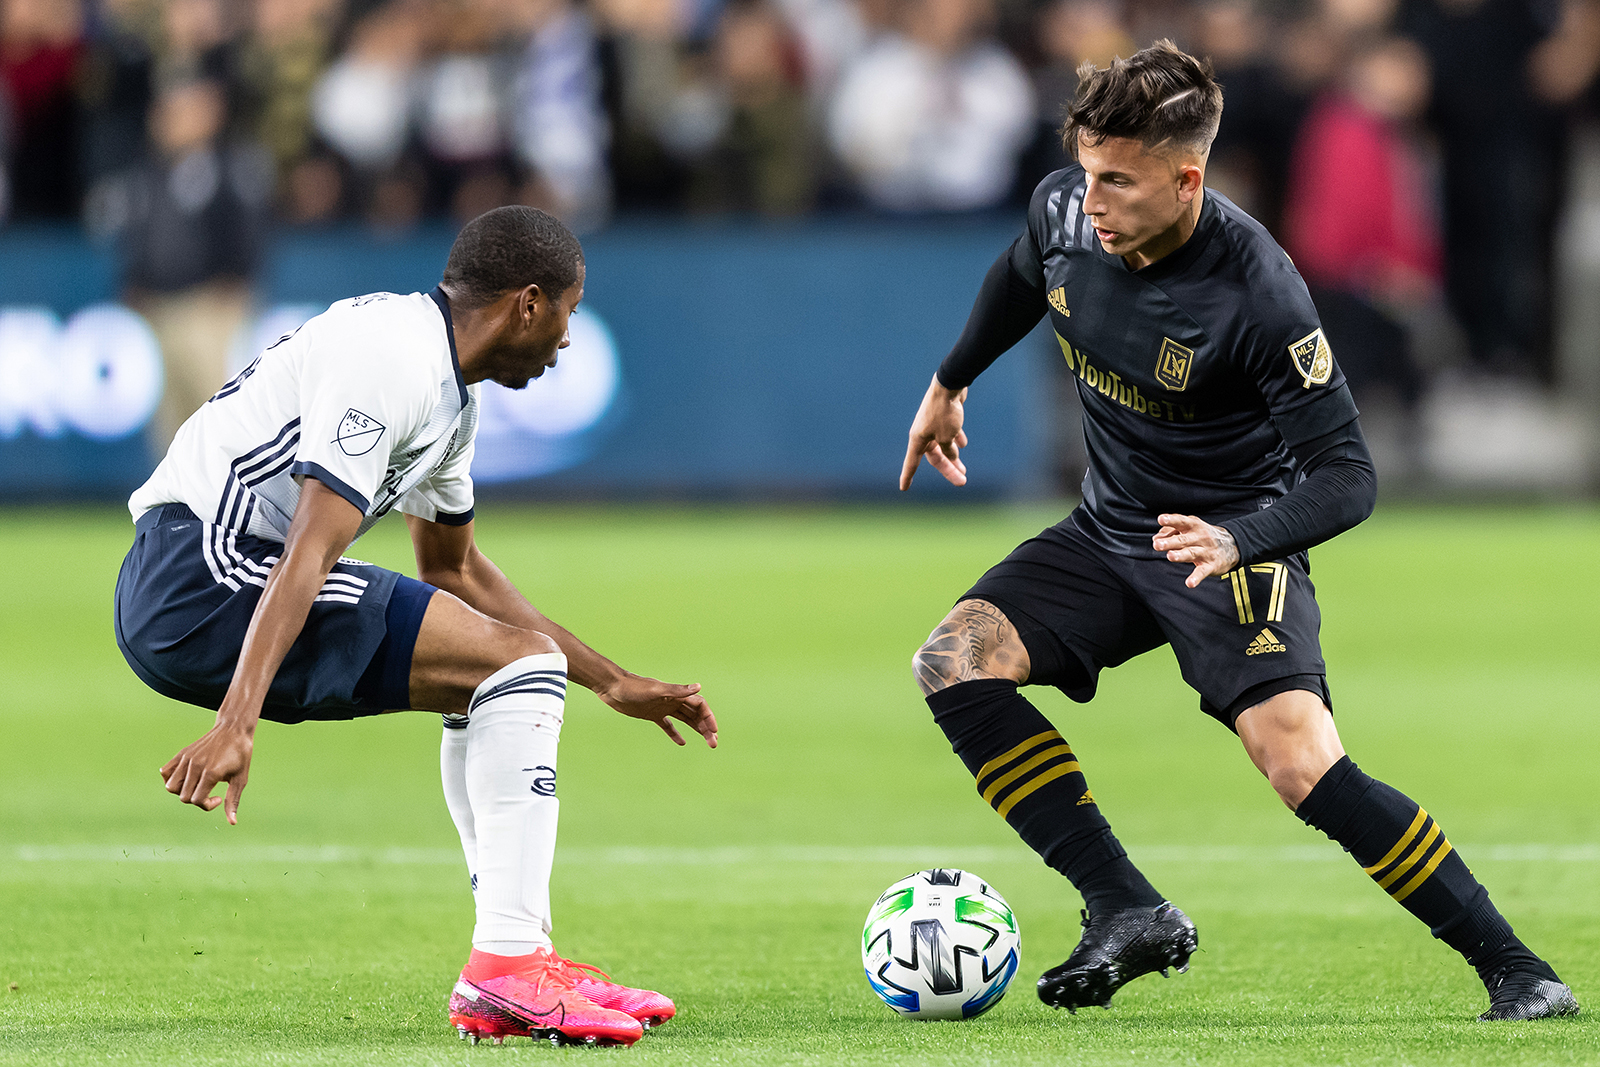 Brian Rodriguez (right) of Los Angeles FC up against a Philadelphia Union player during a game at Banc of California Stadium in Los Angeles, California on March 08 .